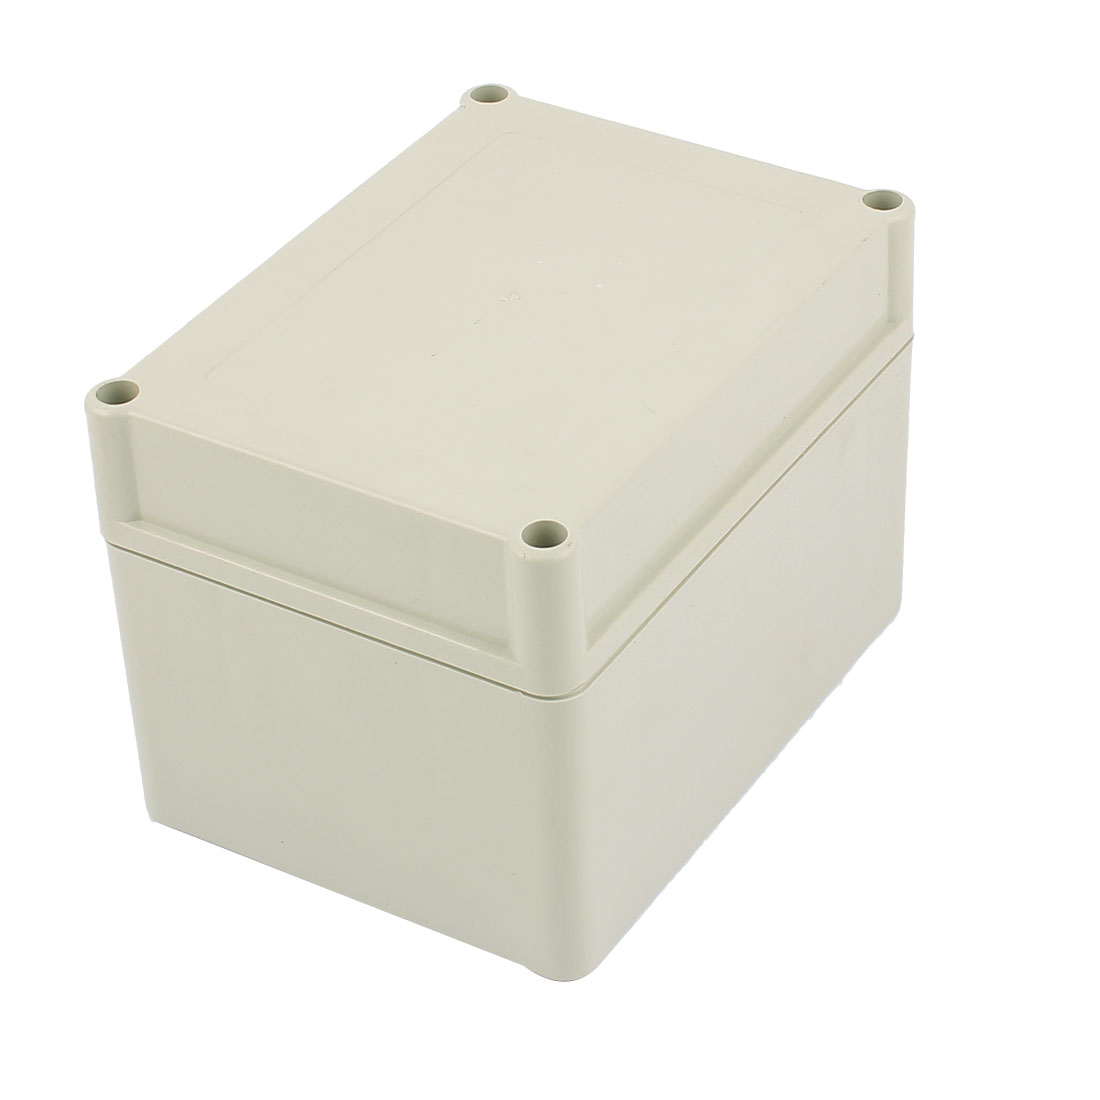 140mmx100mmx100mm Plastic Water Resistant DIY Joint Electrical Enclosure Junction Box Case